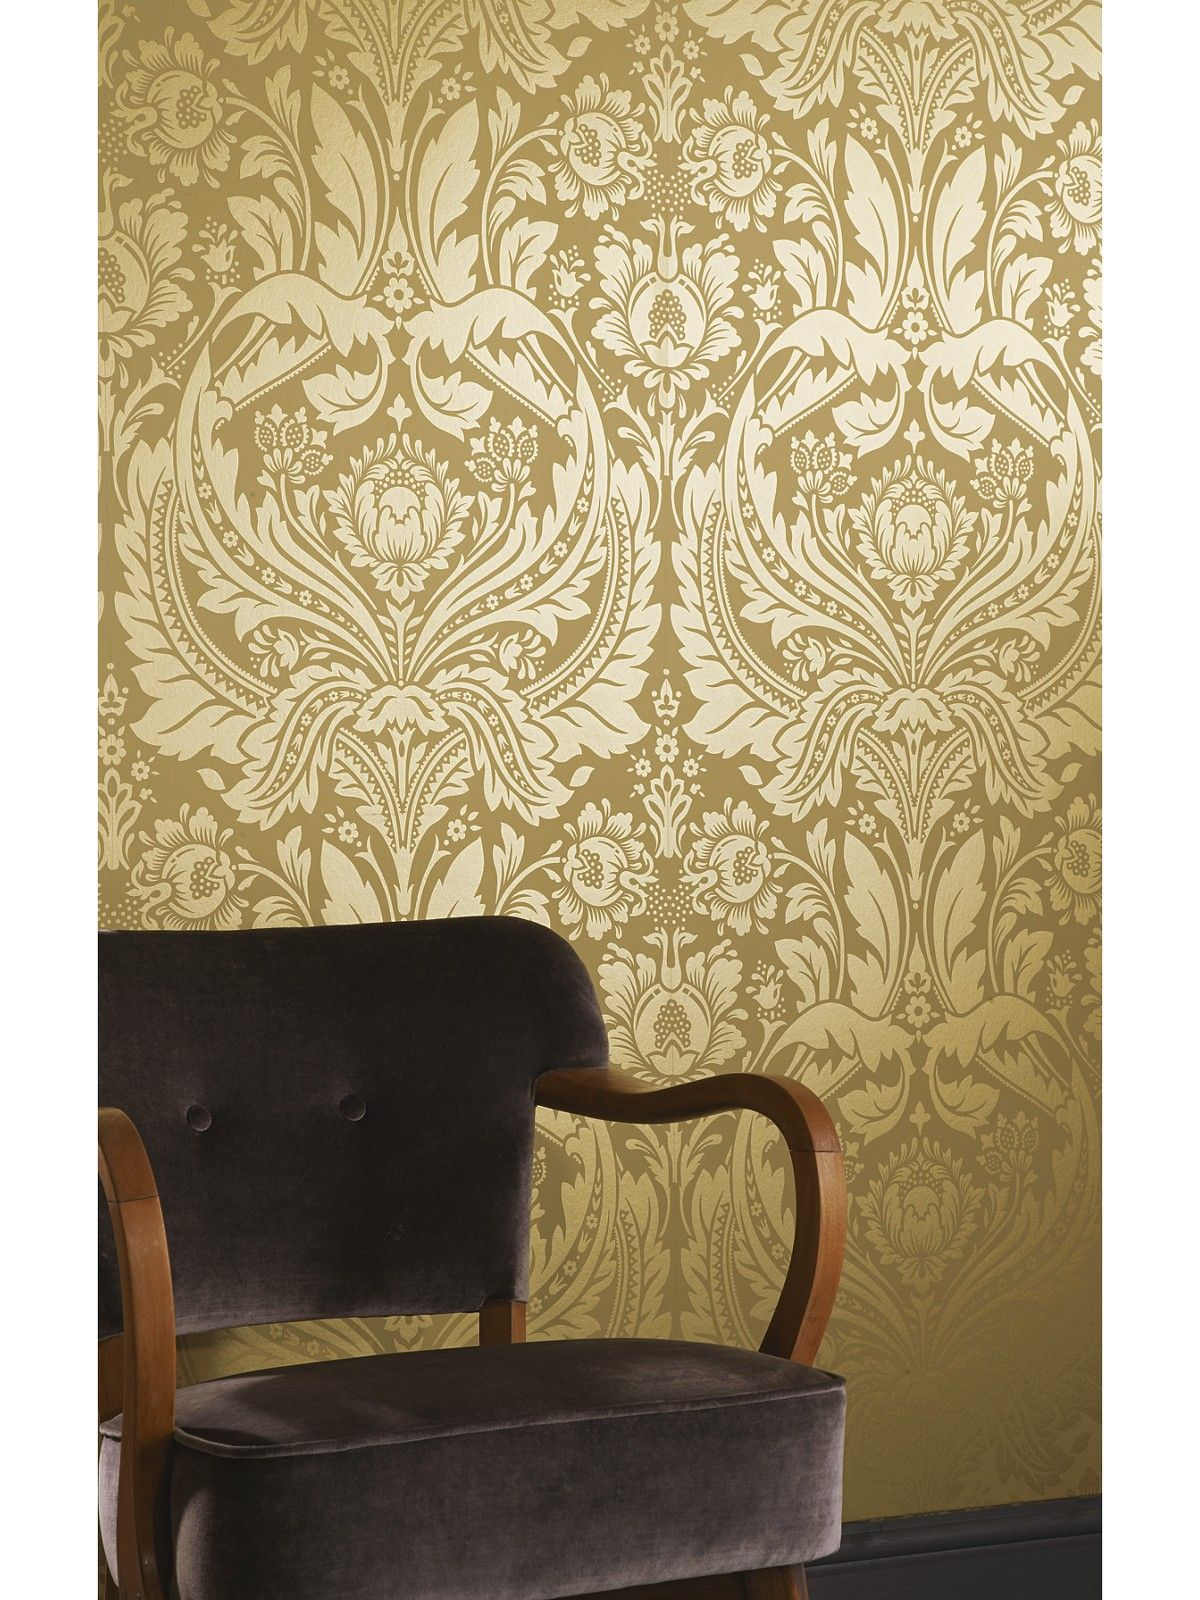 Graham & Brown, Desire wallpaper | Home Sweet Hopefully | Pinterest ...